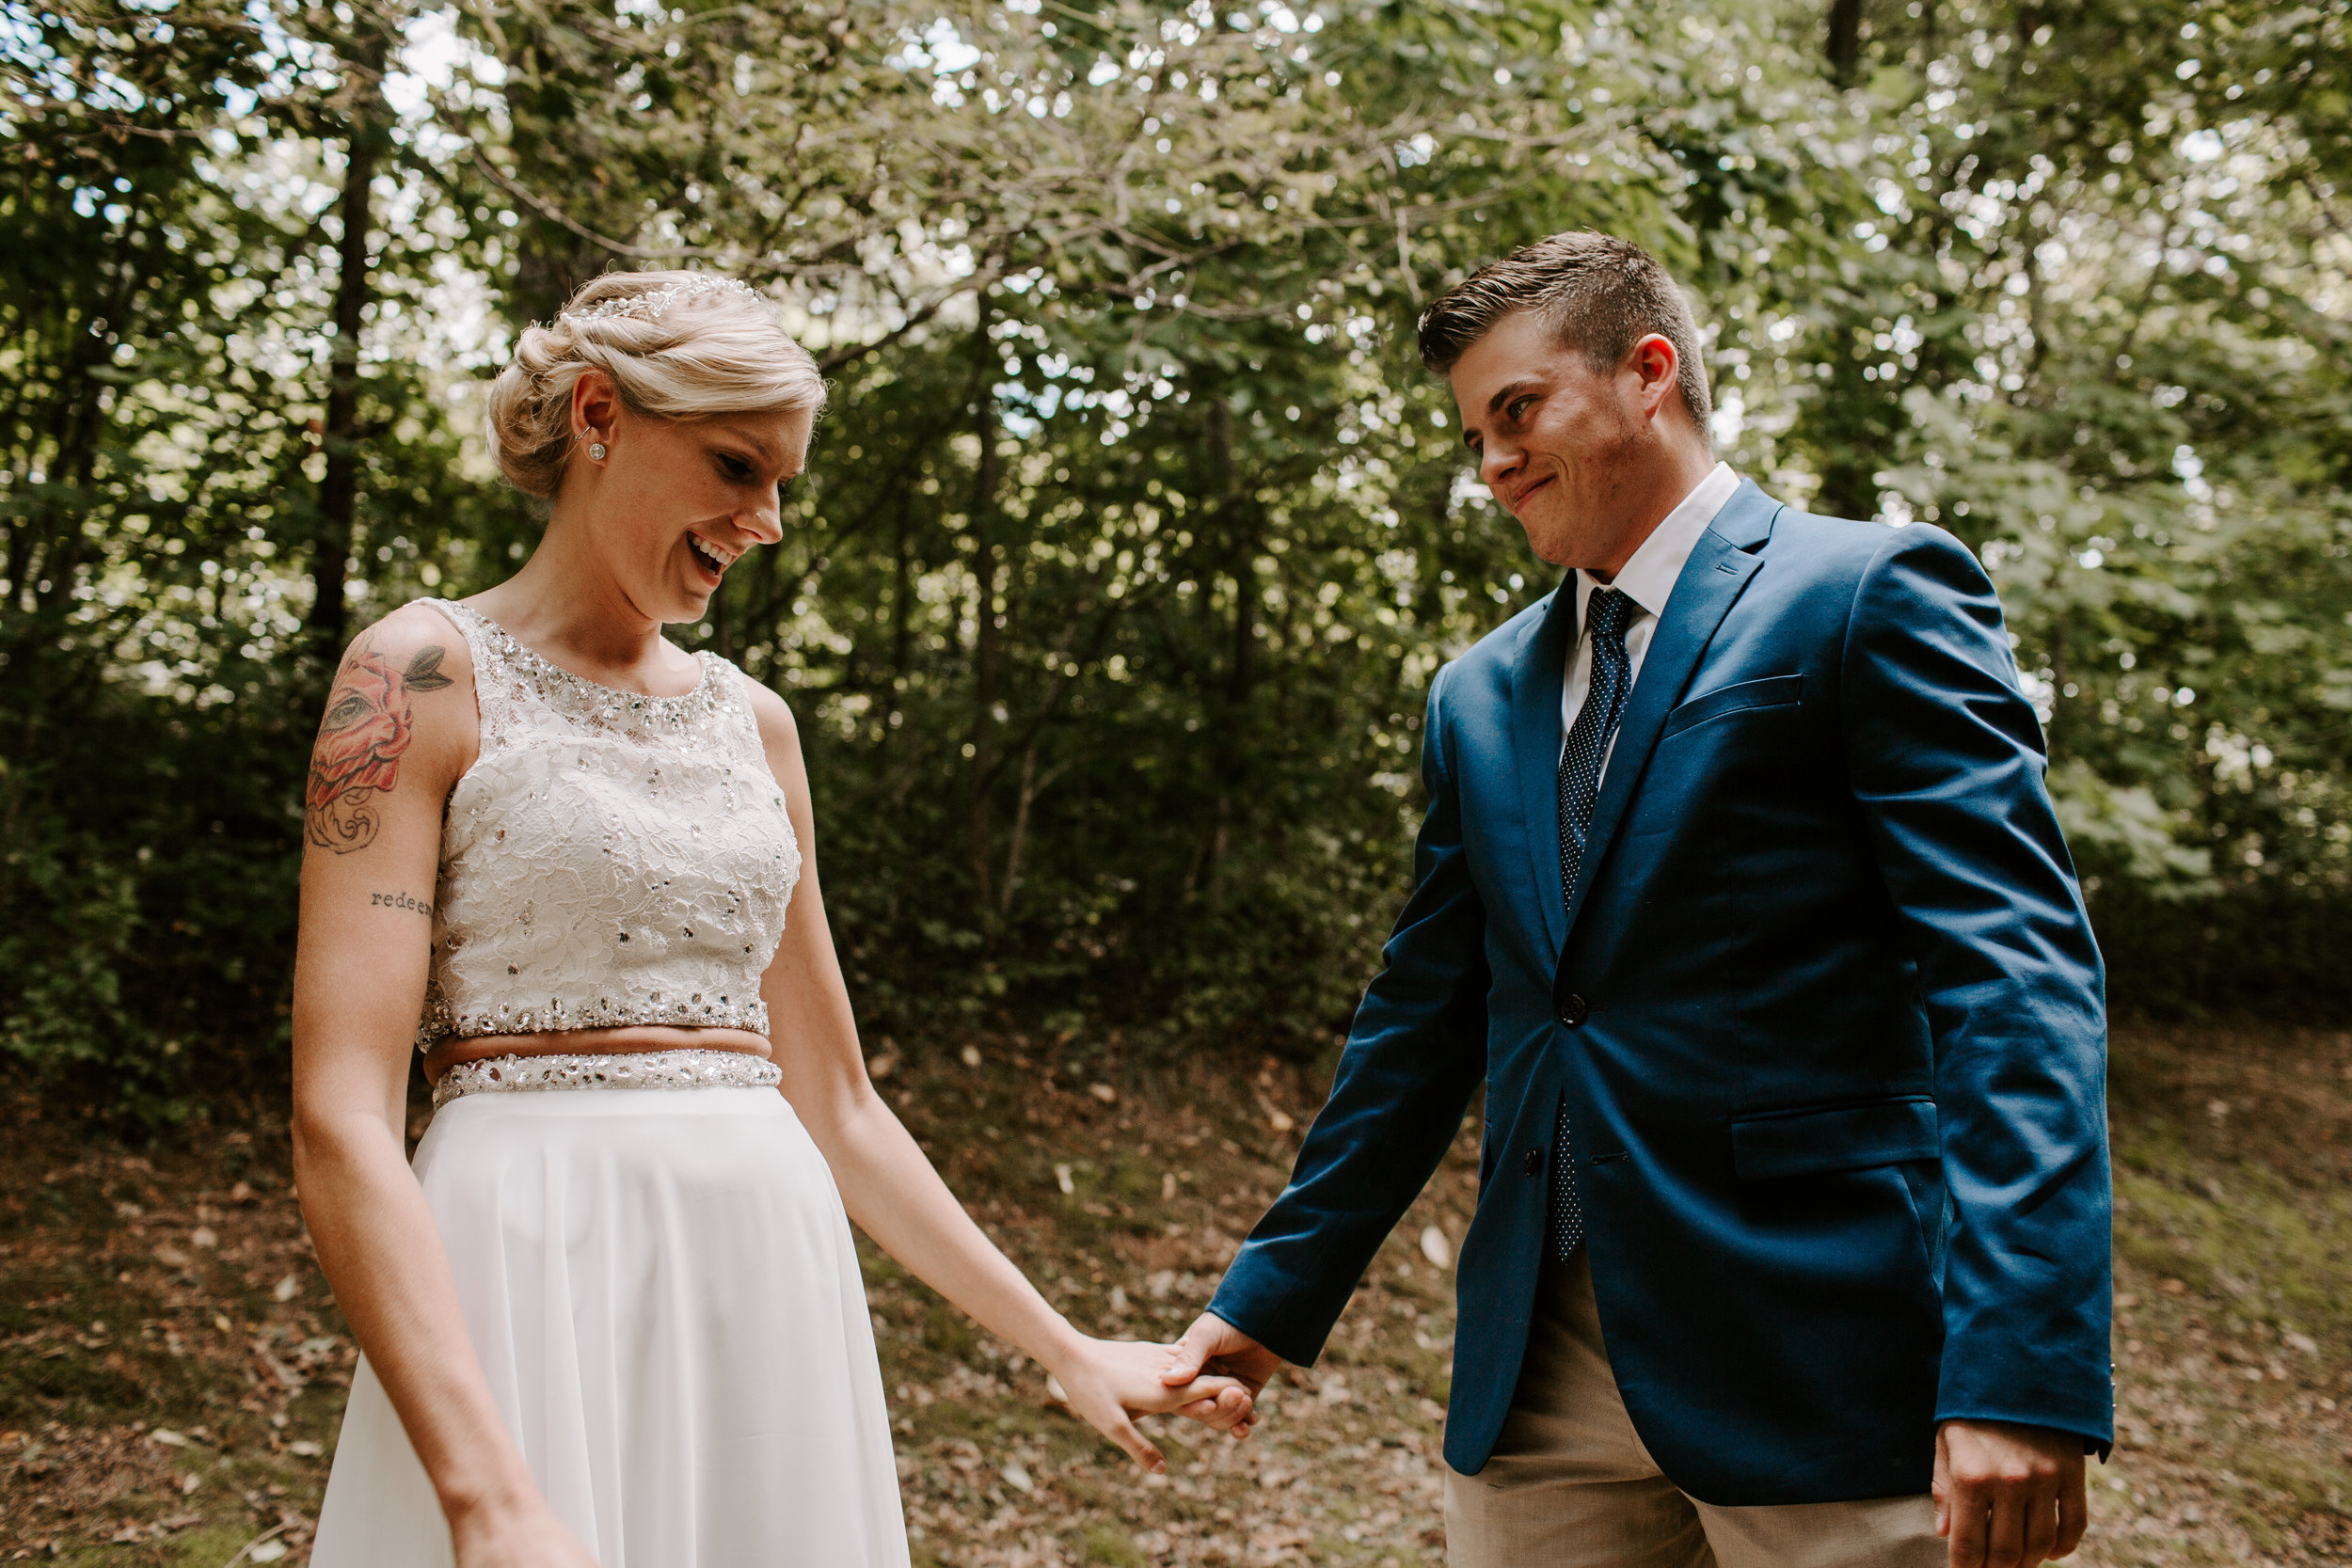 Miranda&braedon_ashevilleelopement (65 of 101).jpg